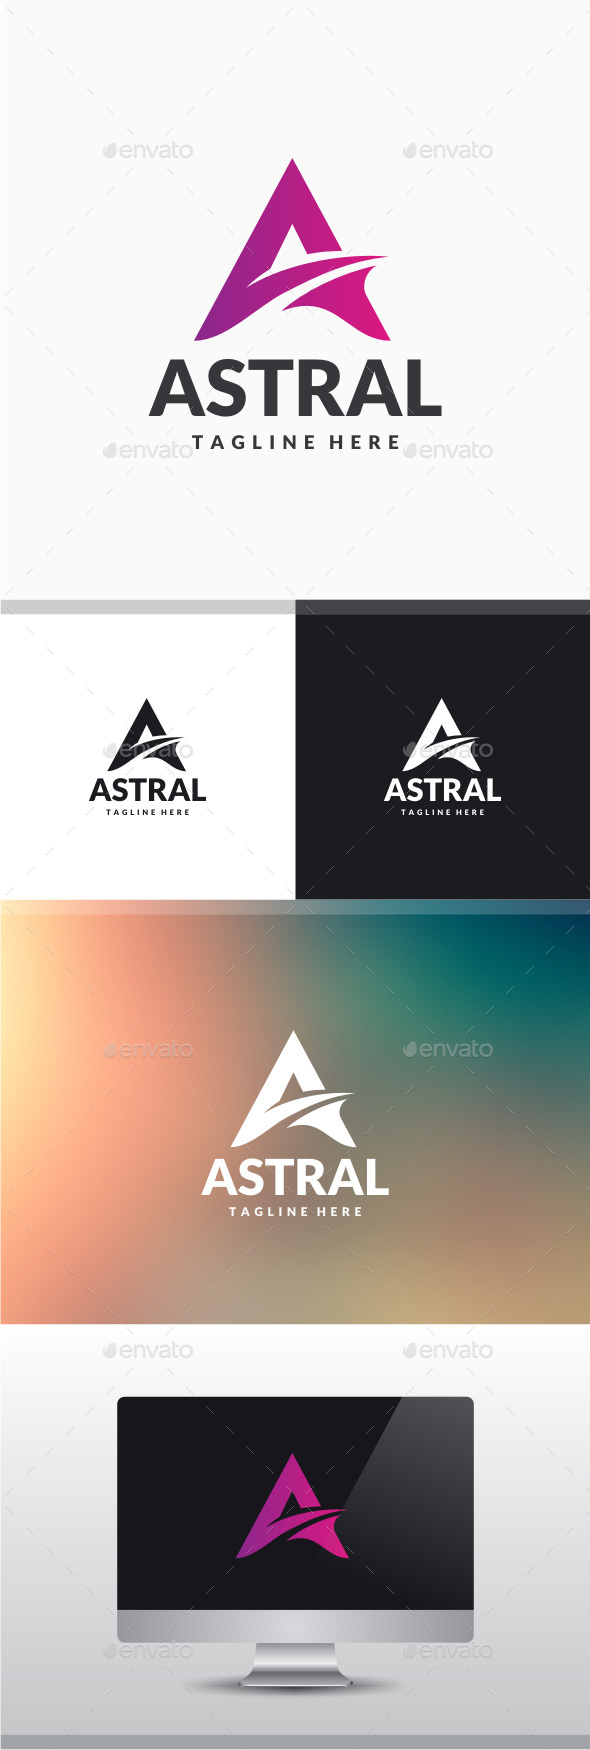 Astral - Letter A Logo - Letters Logo Templates